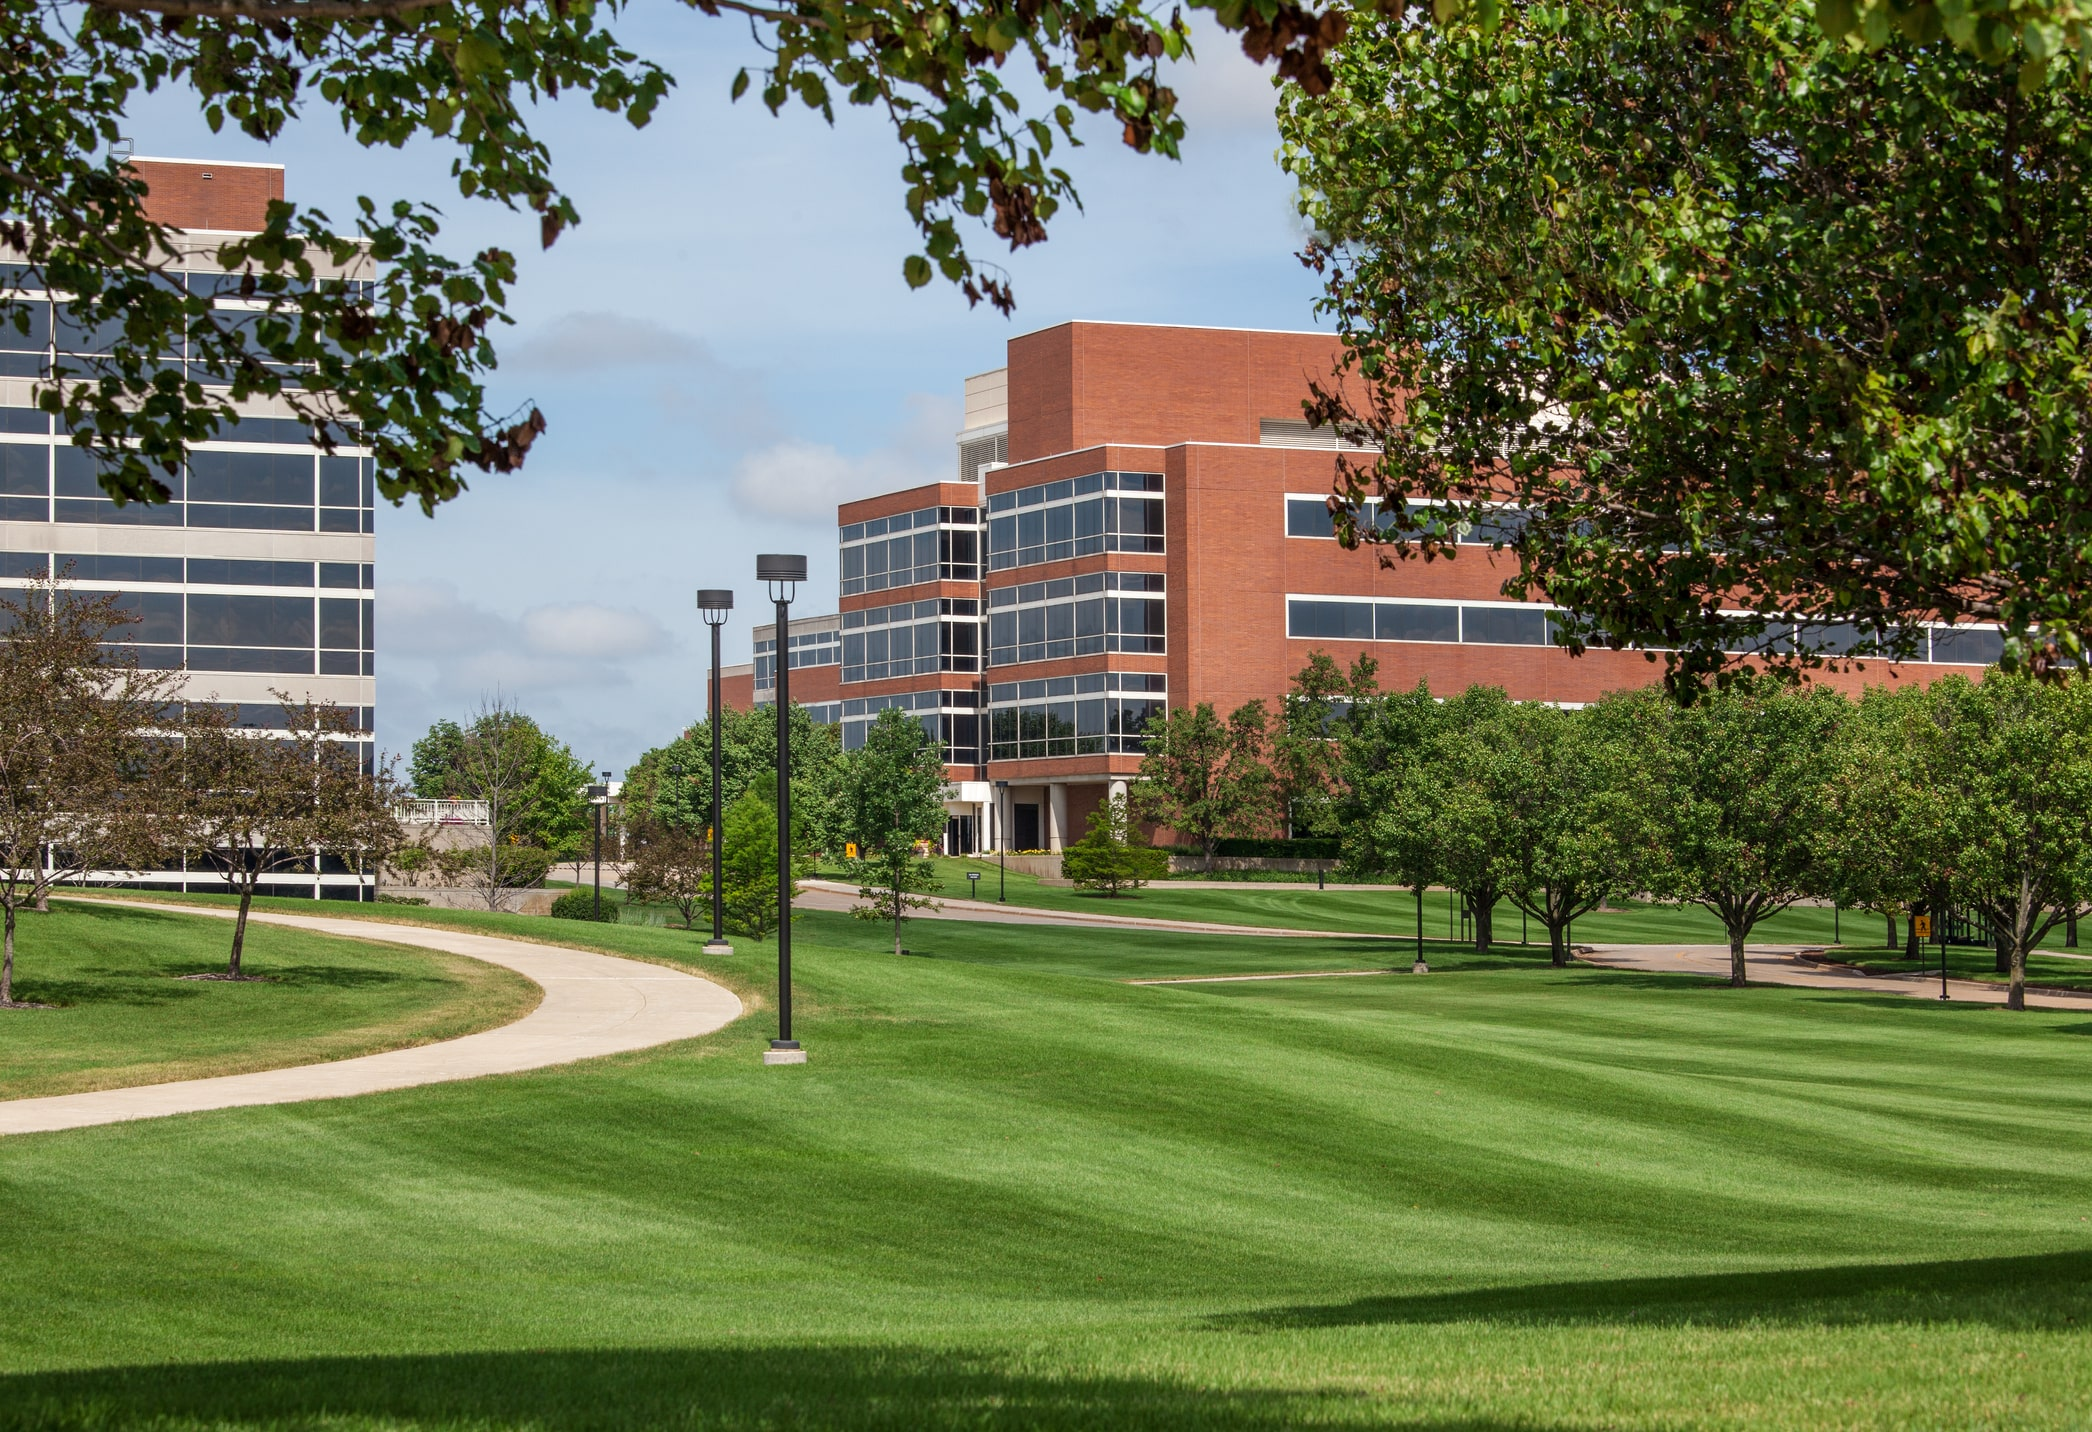 Example of a fully landscaped campus with trees and many walking paths.